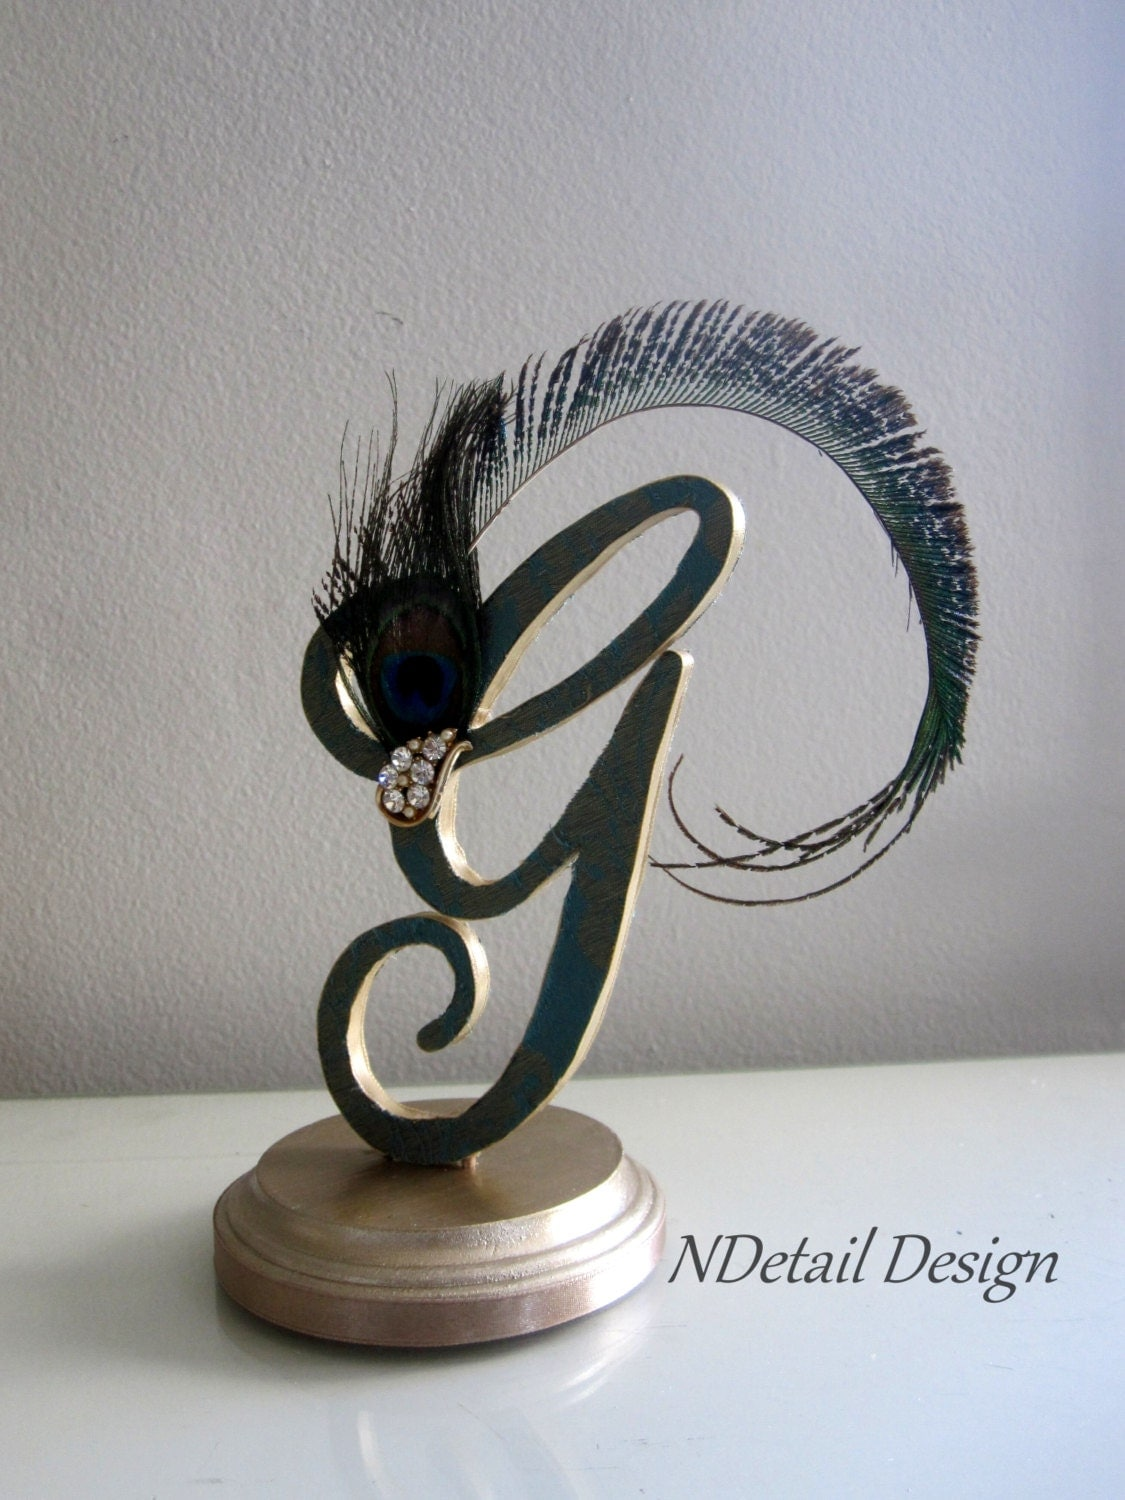 Art Deco Monogram Cake Topper : Peacock Toppers Wooden Letters Monogram Cake Topper Gatsby